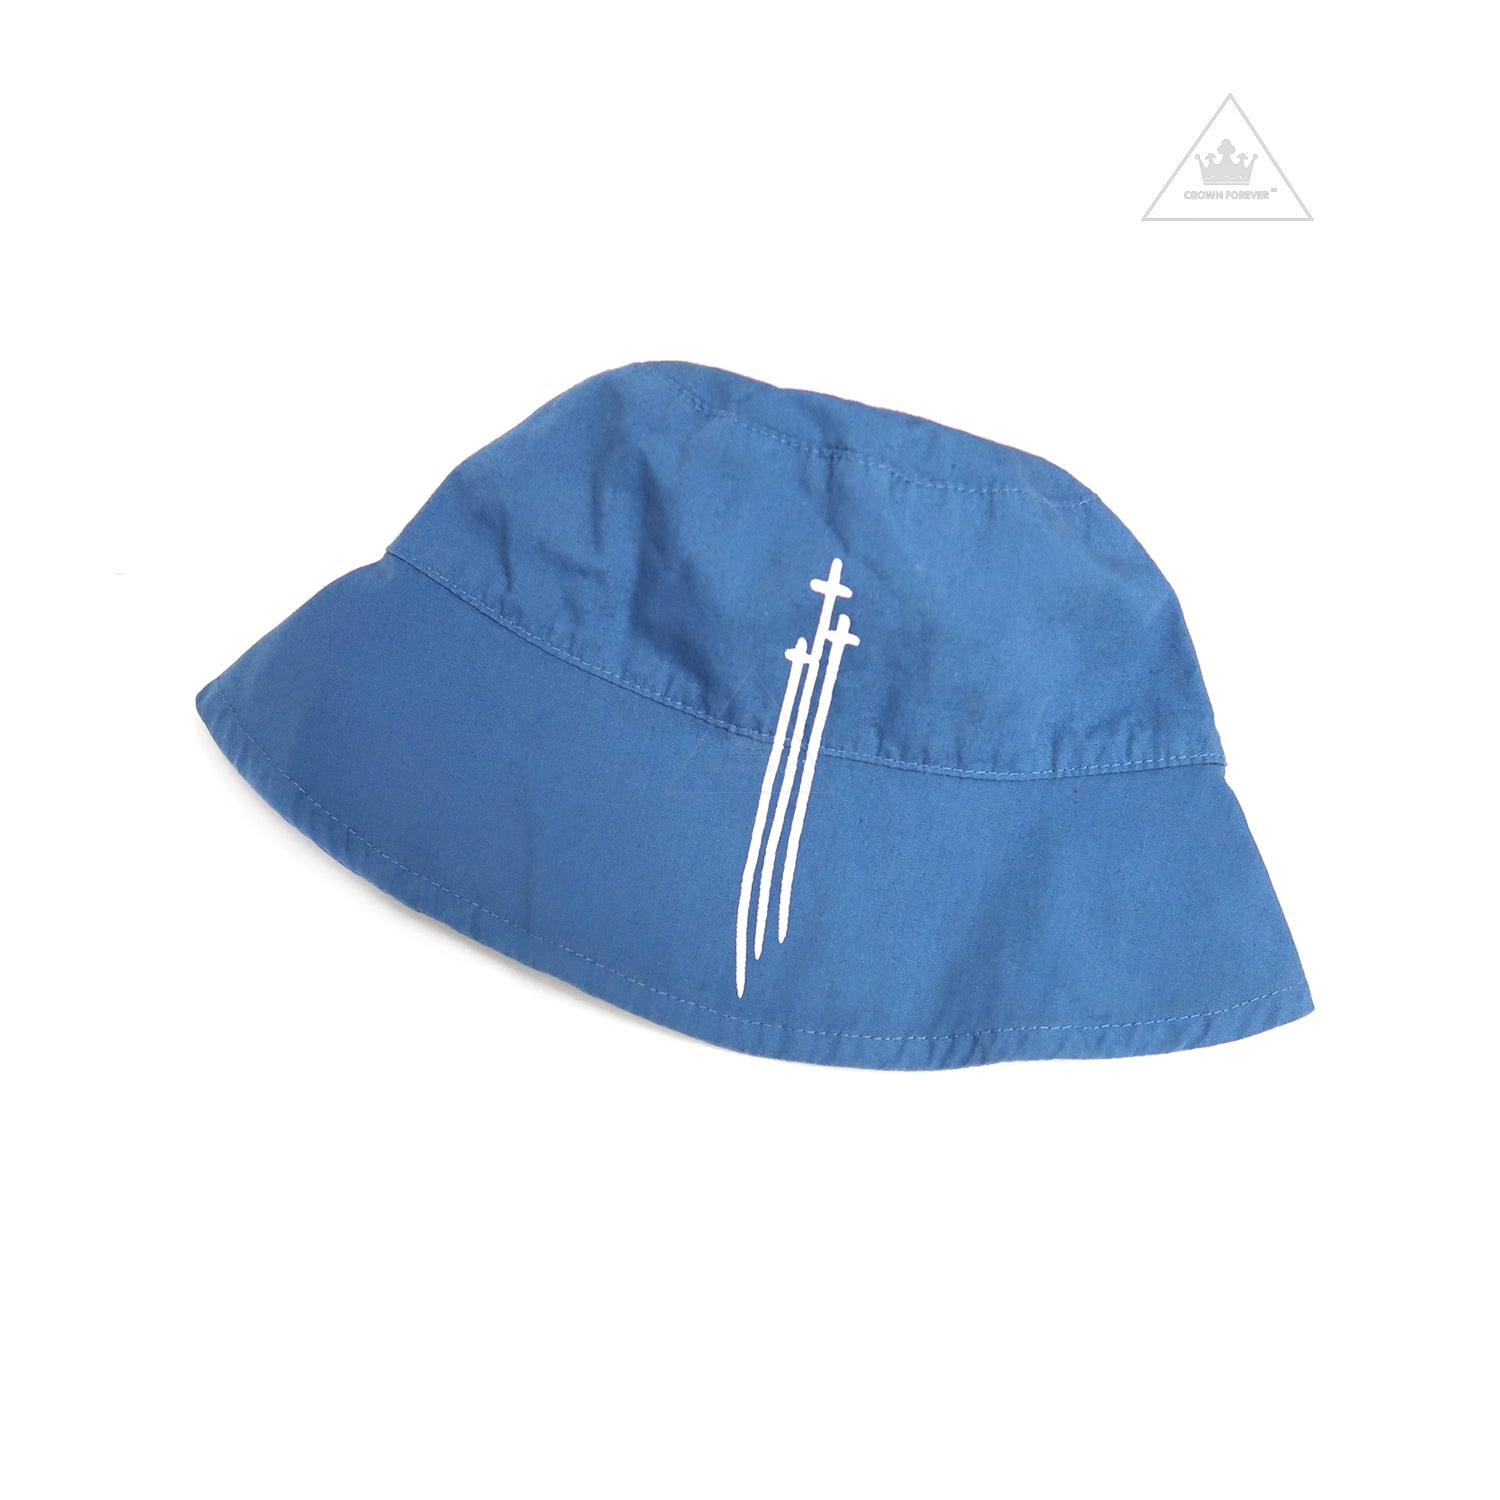 ccbc4f72133 Chrome Hearts Infant s Bucket Hat – Crown Forever